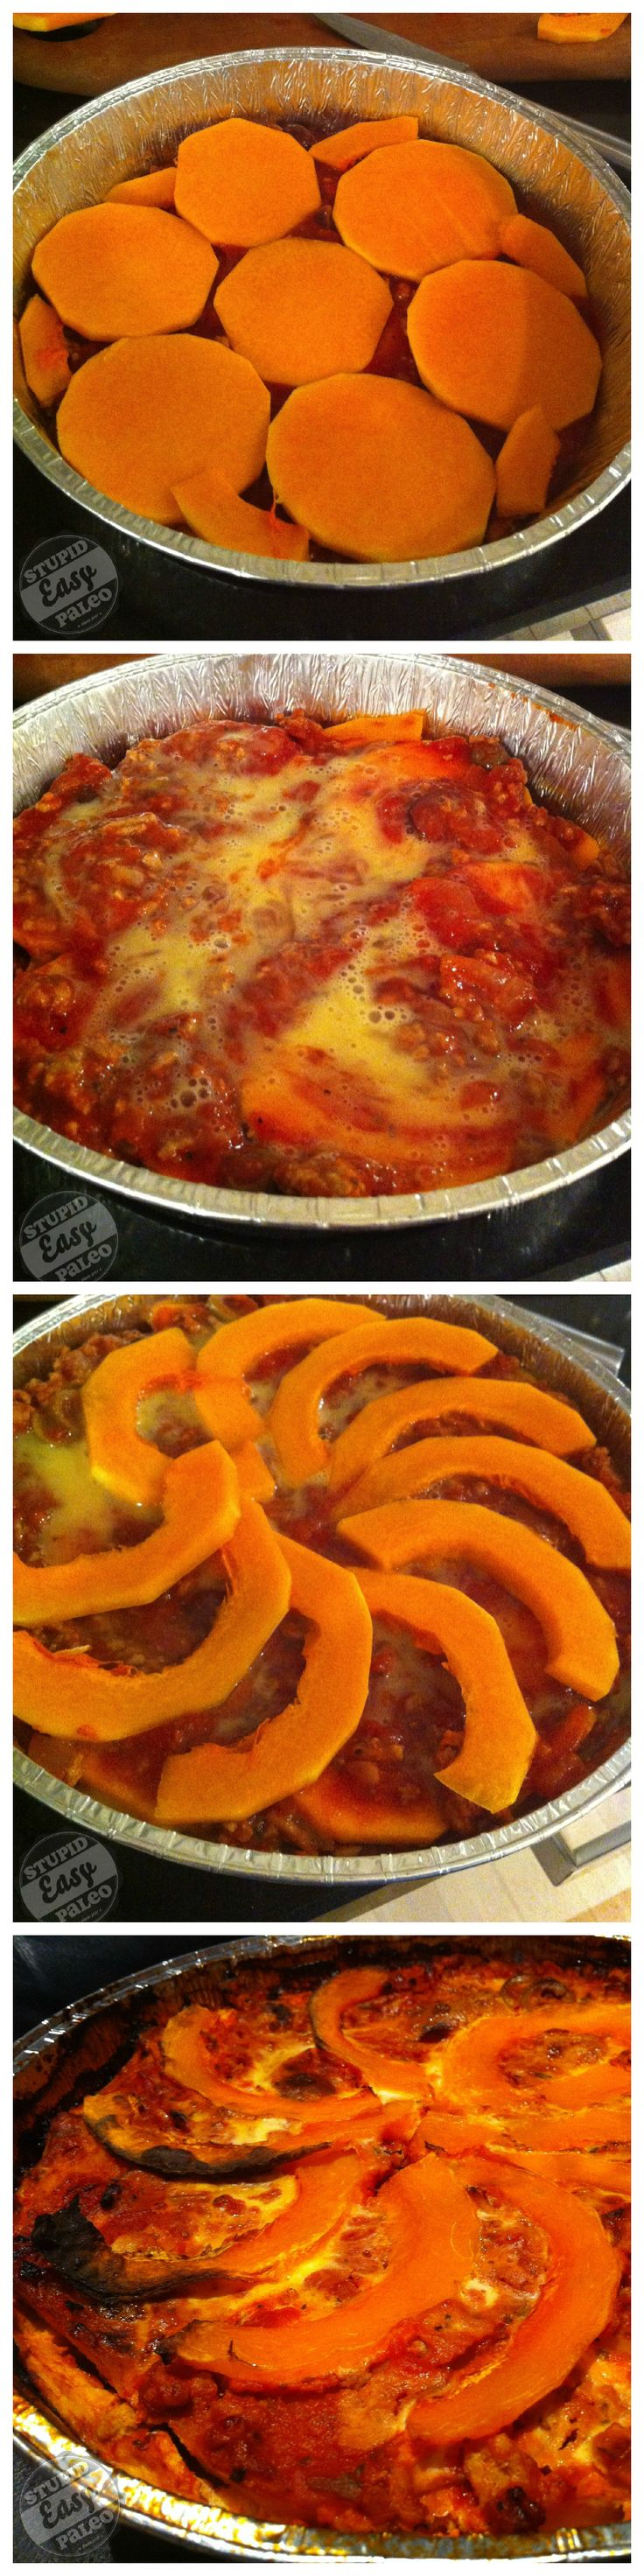 Butternut Squash Lasagna layering steps from http://stupideasypaleo.com/2013/03/25/butternut-squash-lasagna/. Check out the recipe link for more!